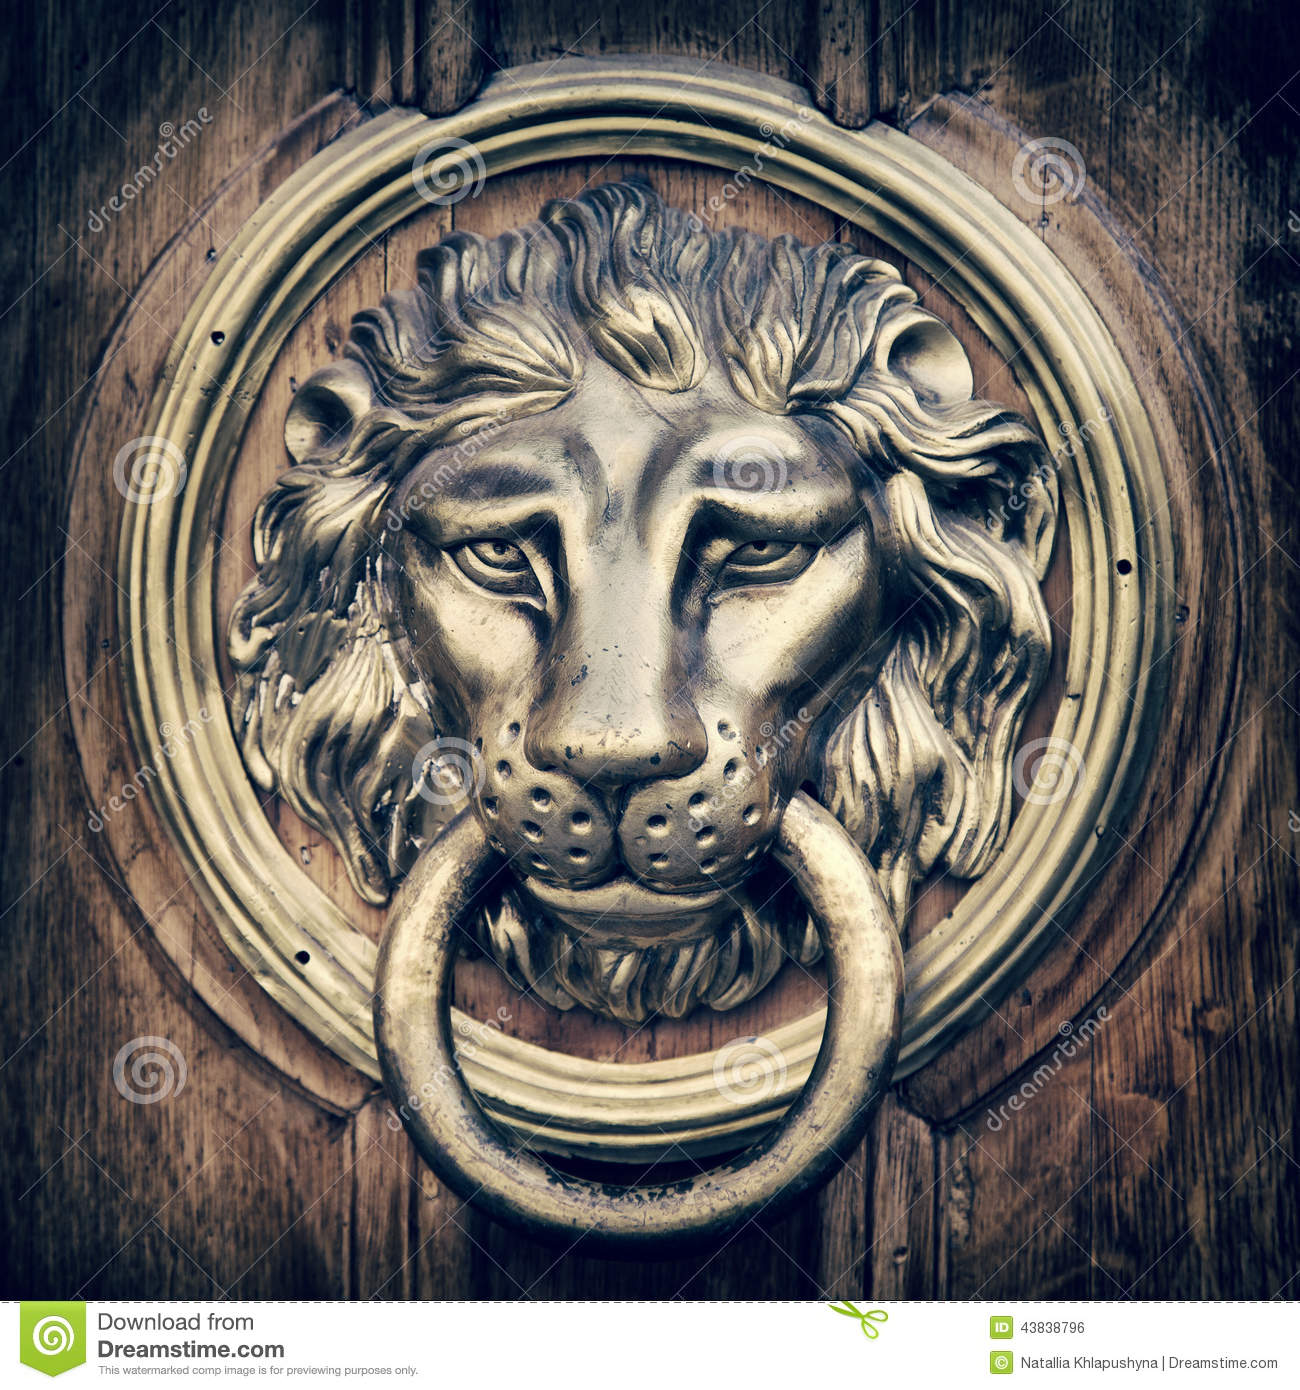 Door knocker, handle - lion head. Vintage stylized. - Door Knocker, Handle - Lion Head. Vintage Stylized. Stock Photo